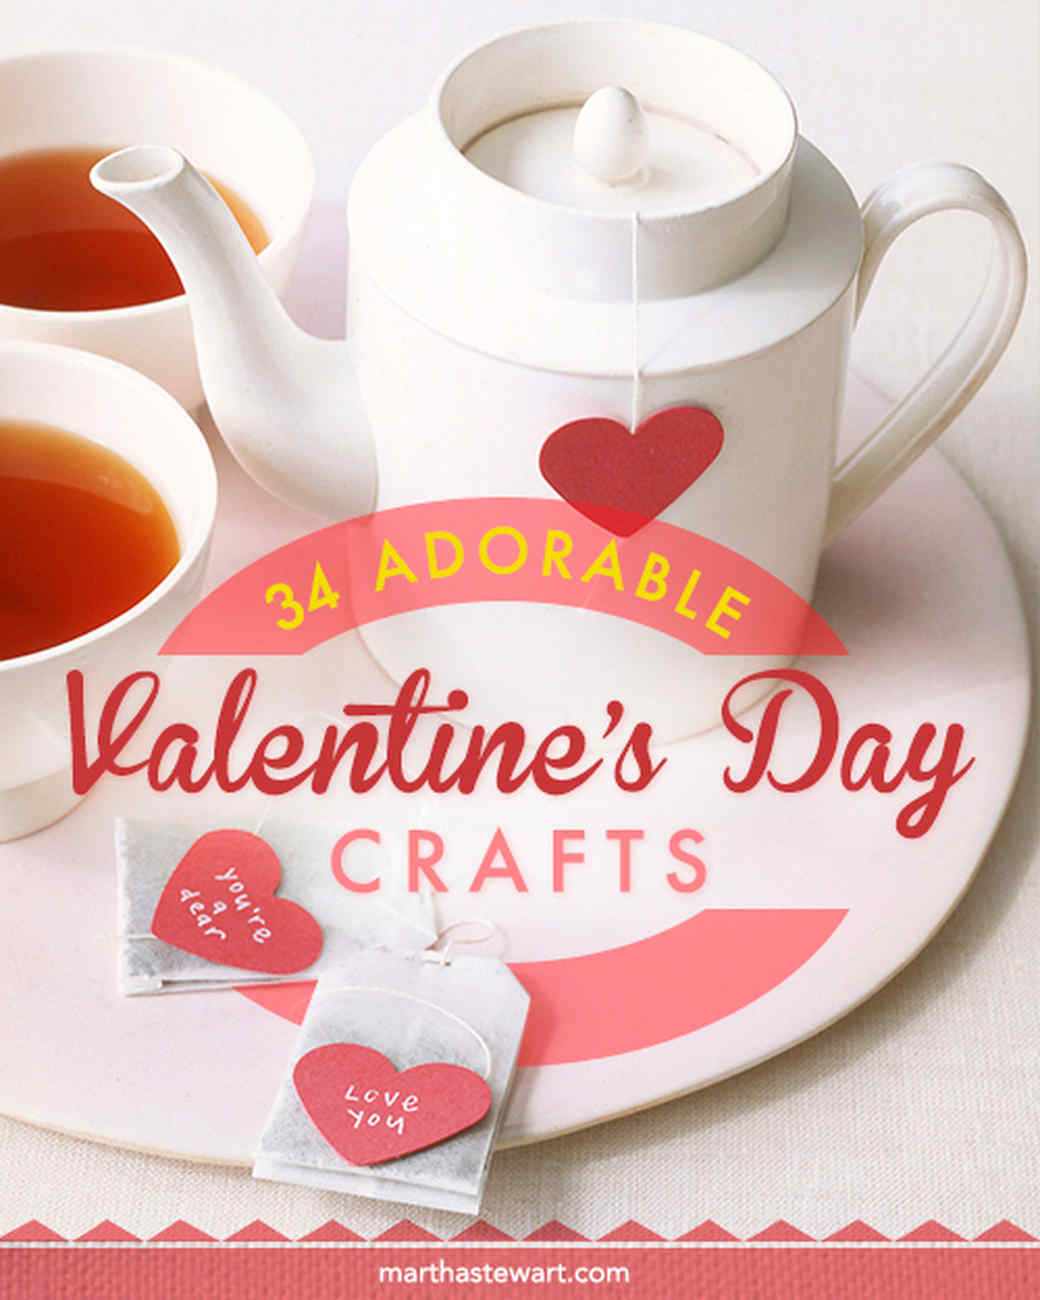 Make it a Handmade Valentineu0027s Day  sc 1 st  Martha Stewart & 37 Valentineu0027s Day Crafts to Make From the Heart | Martha Stewart